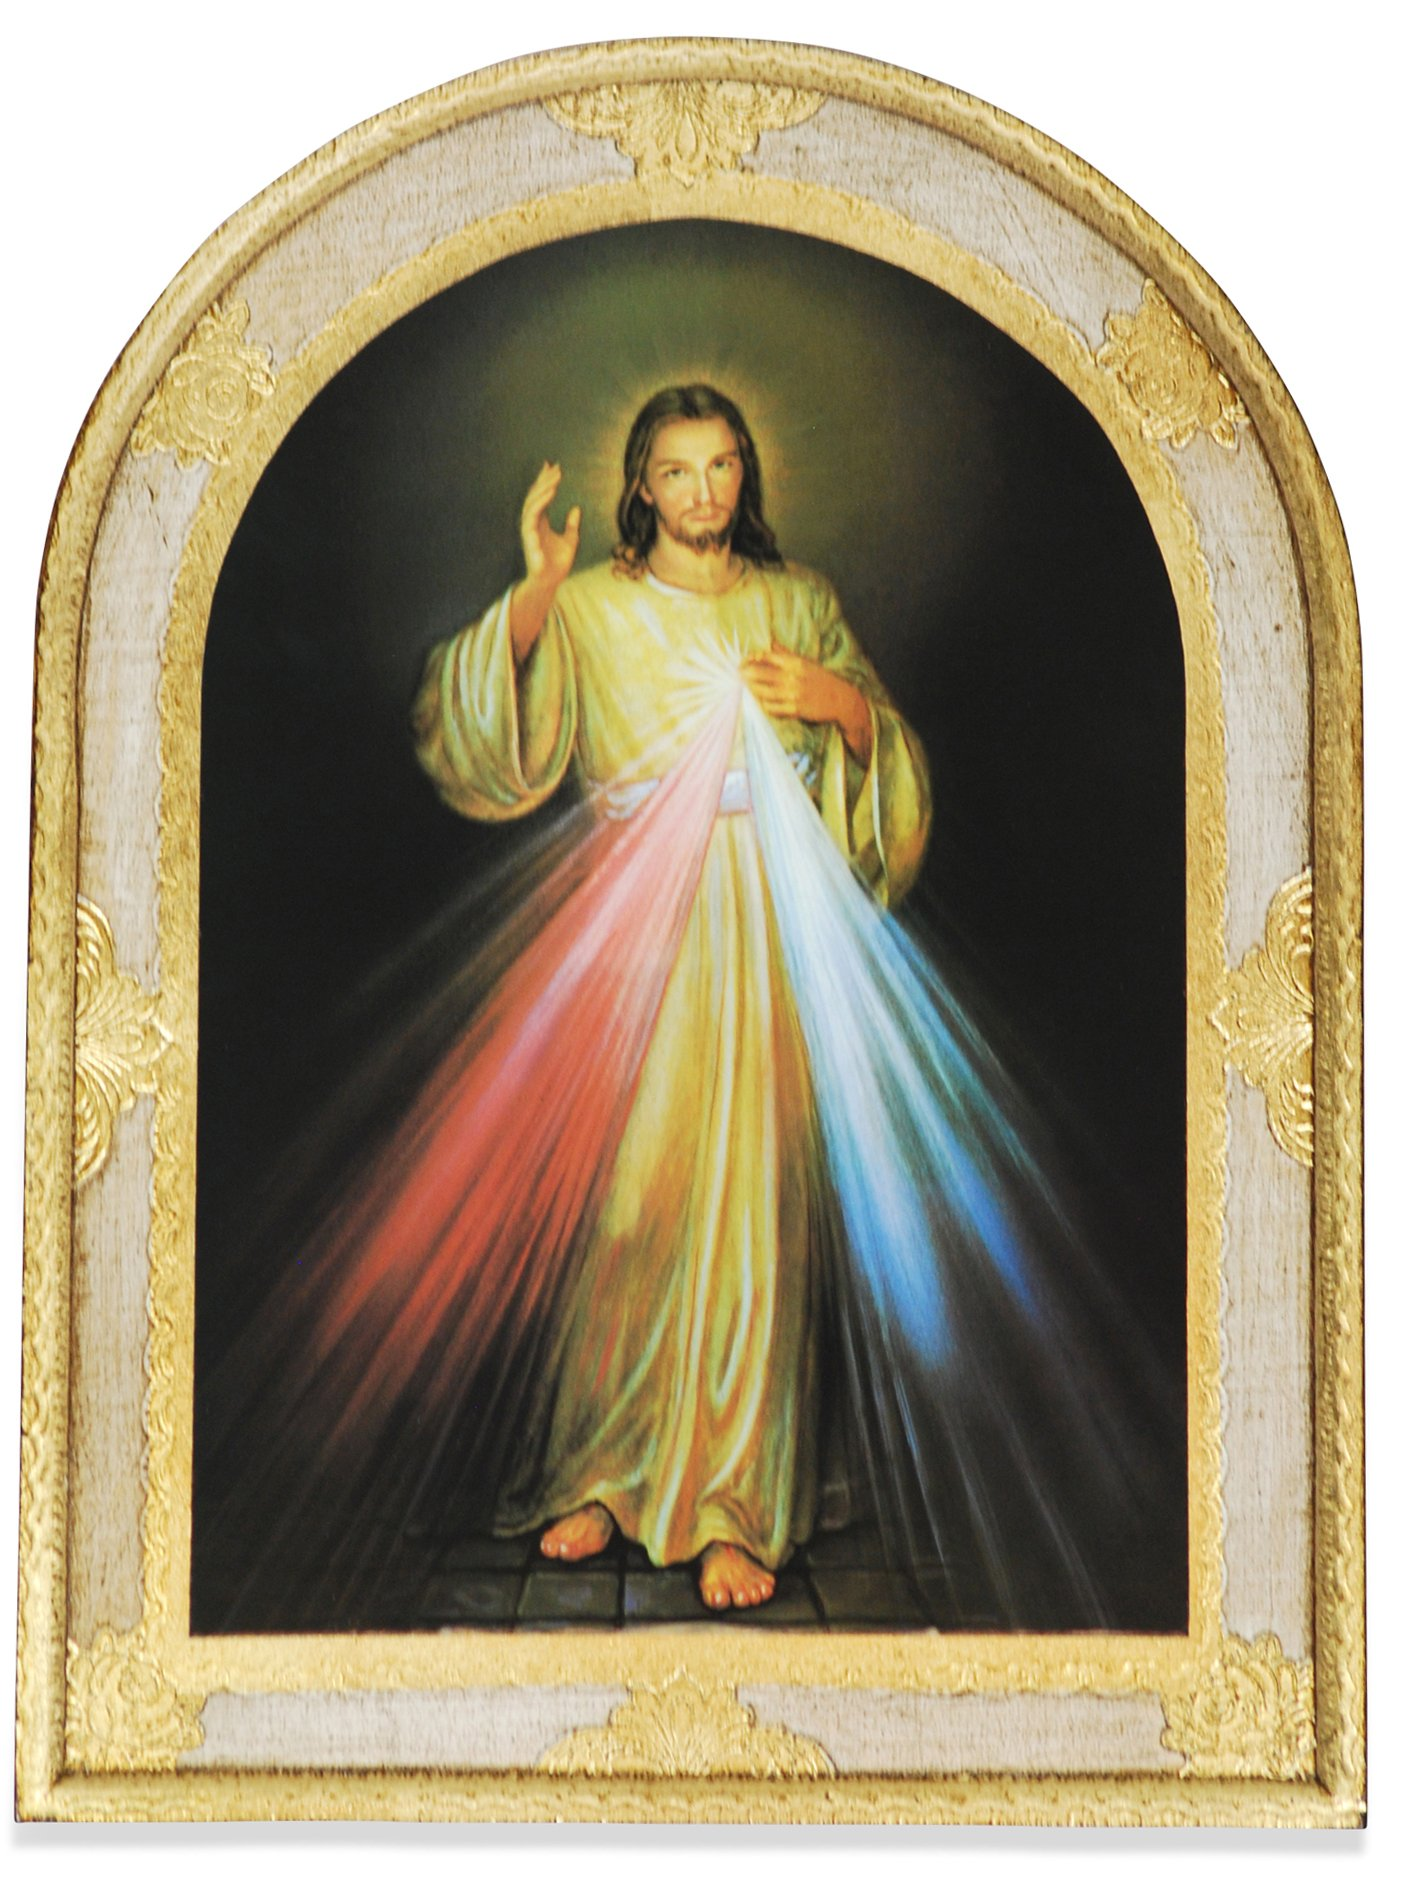 Divine Mercy Large Wall Panel with Gold Leaf Border and Wall Hook - Made in Italy by Vatican Arts